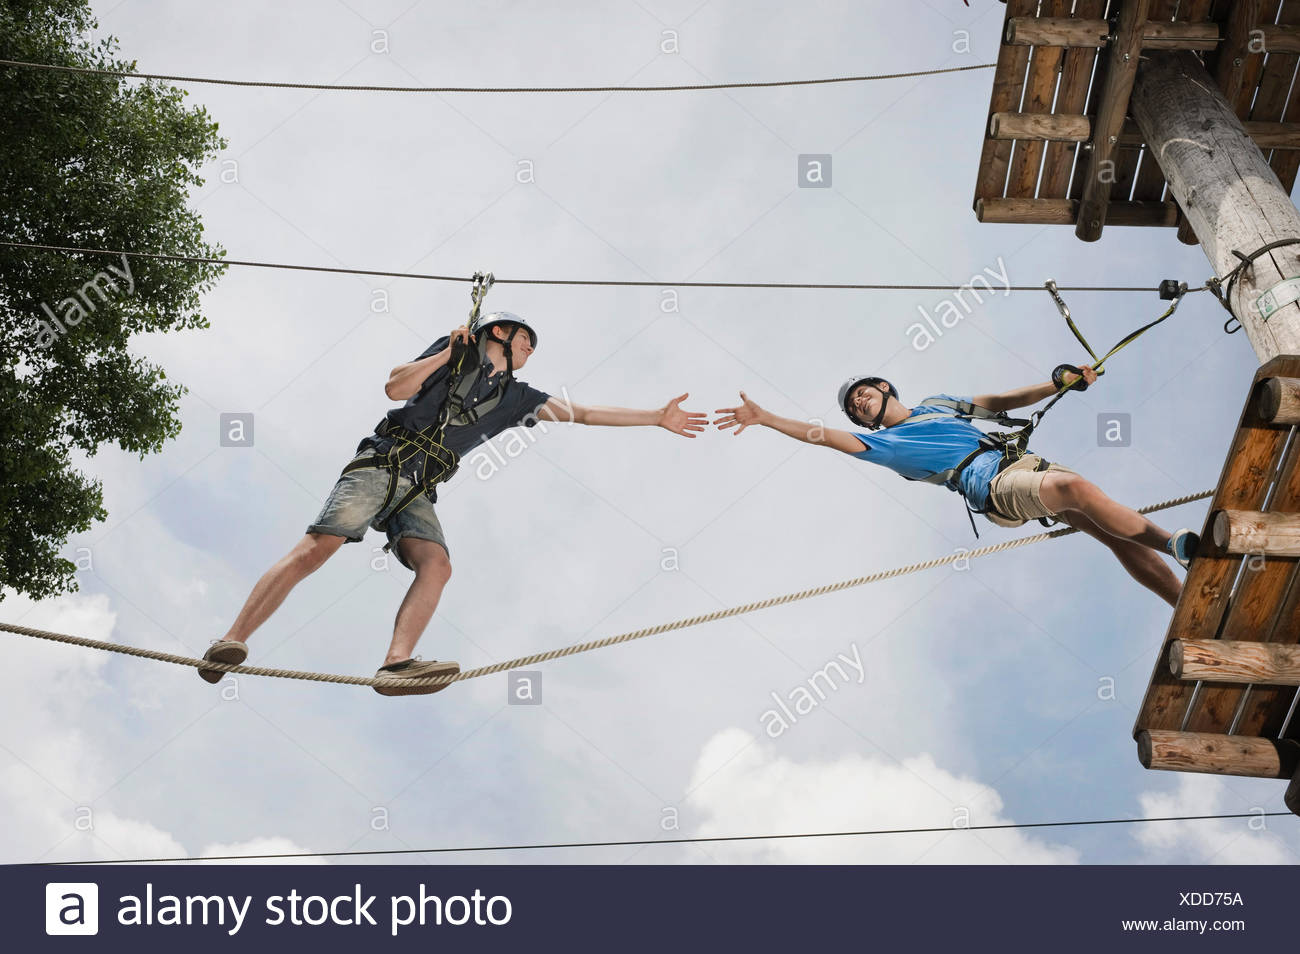 teenager in a climbing crag helping another - Stock Image